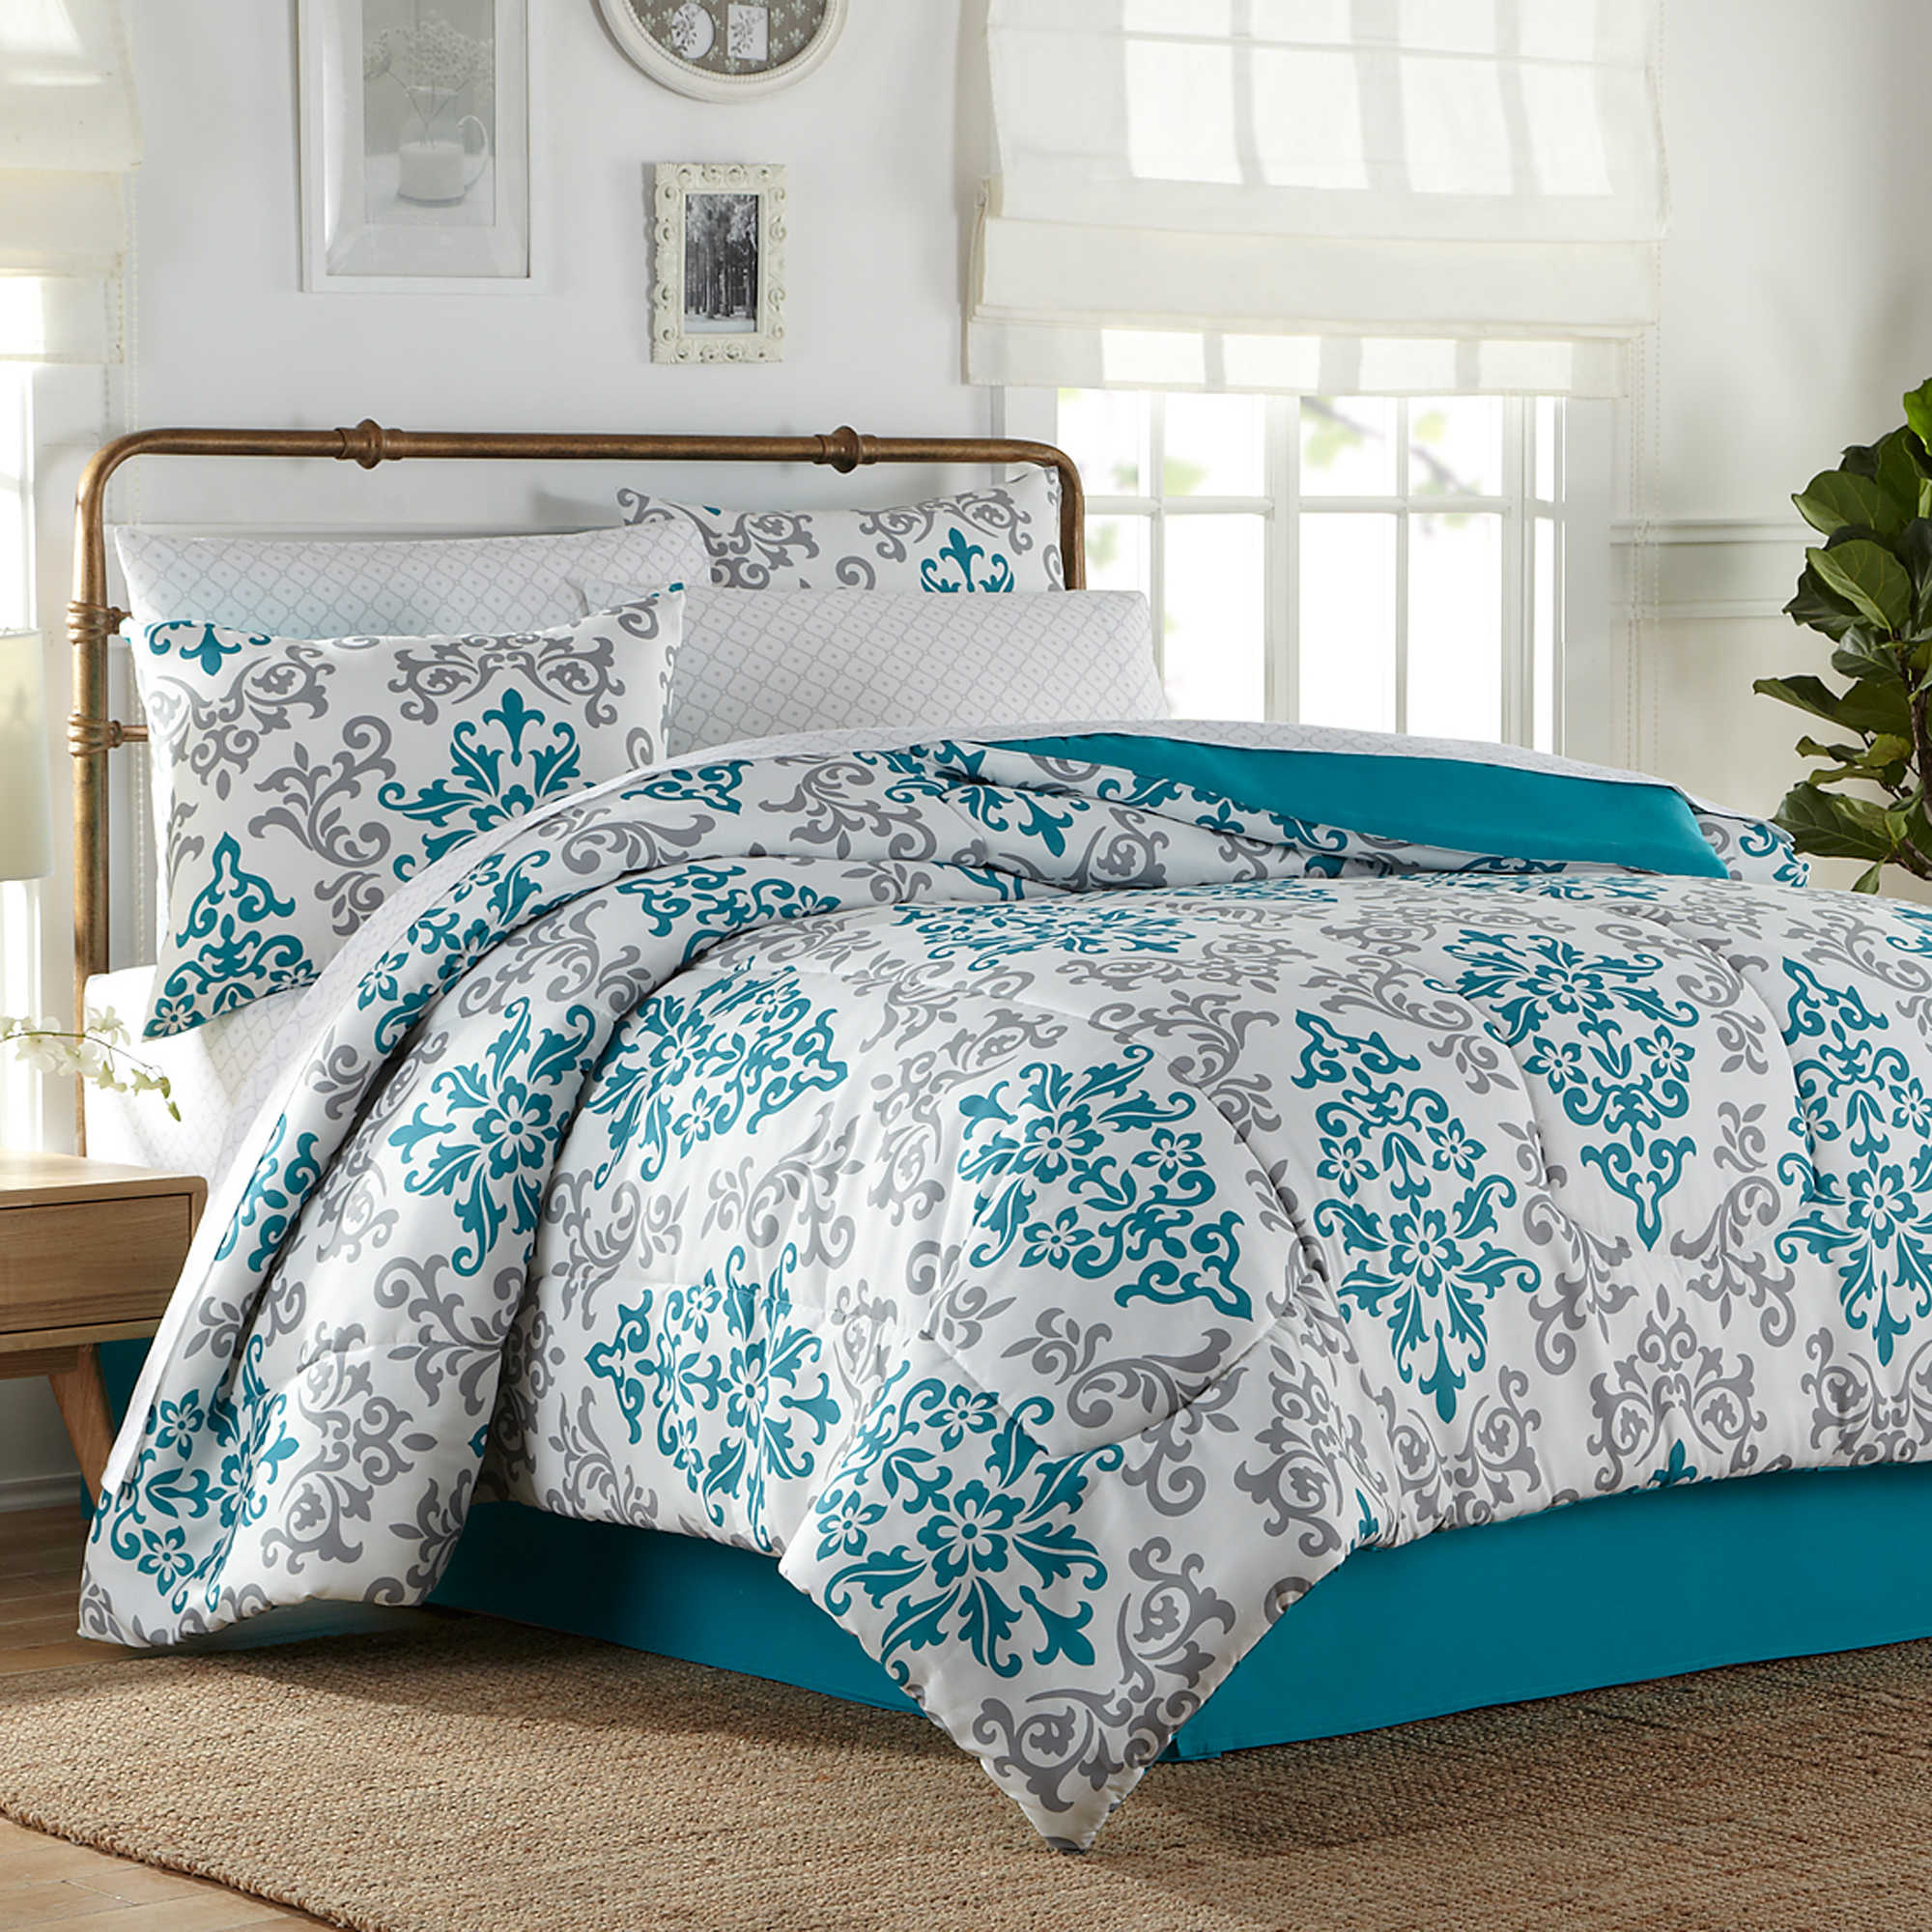 Turquoise bedding and plus turquoise blue comforter and plus chic bedding and plus turquoise floral bedding